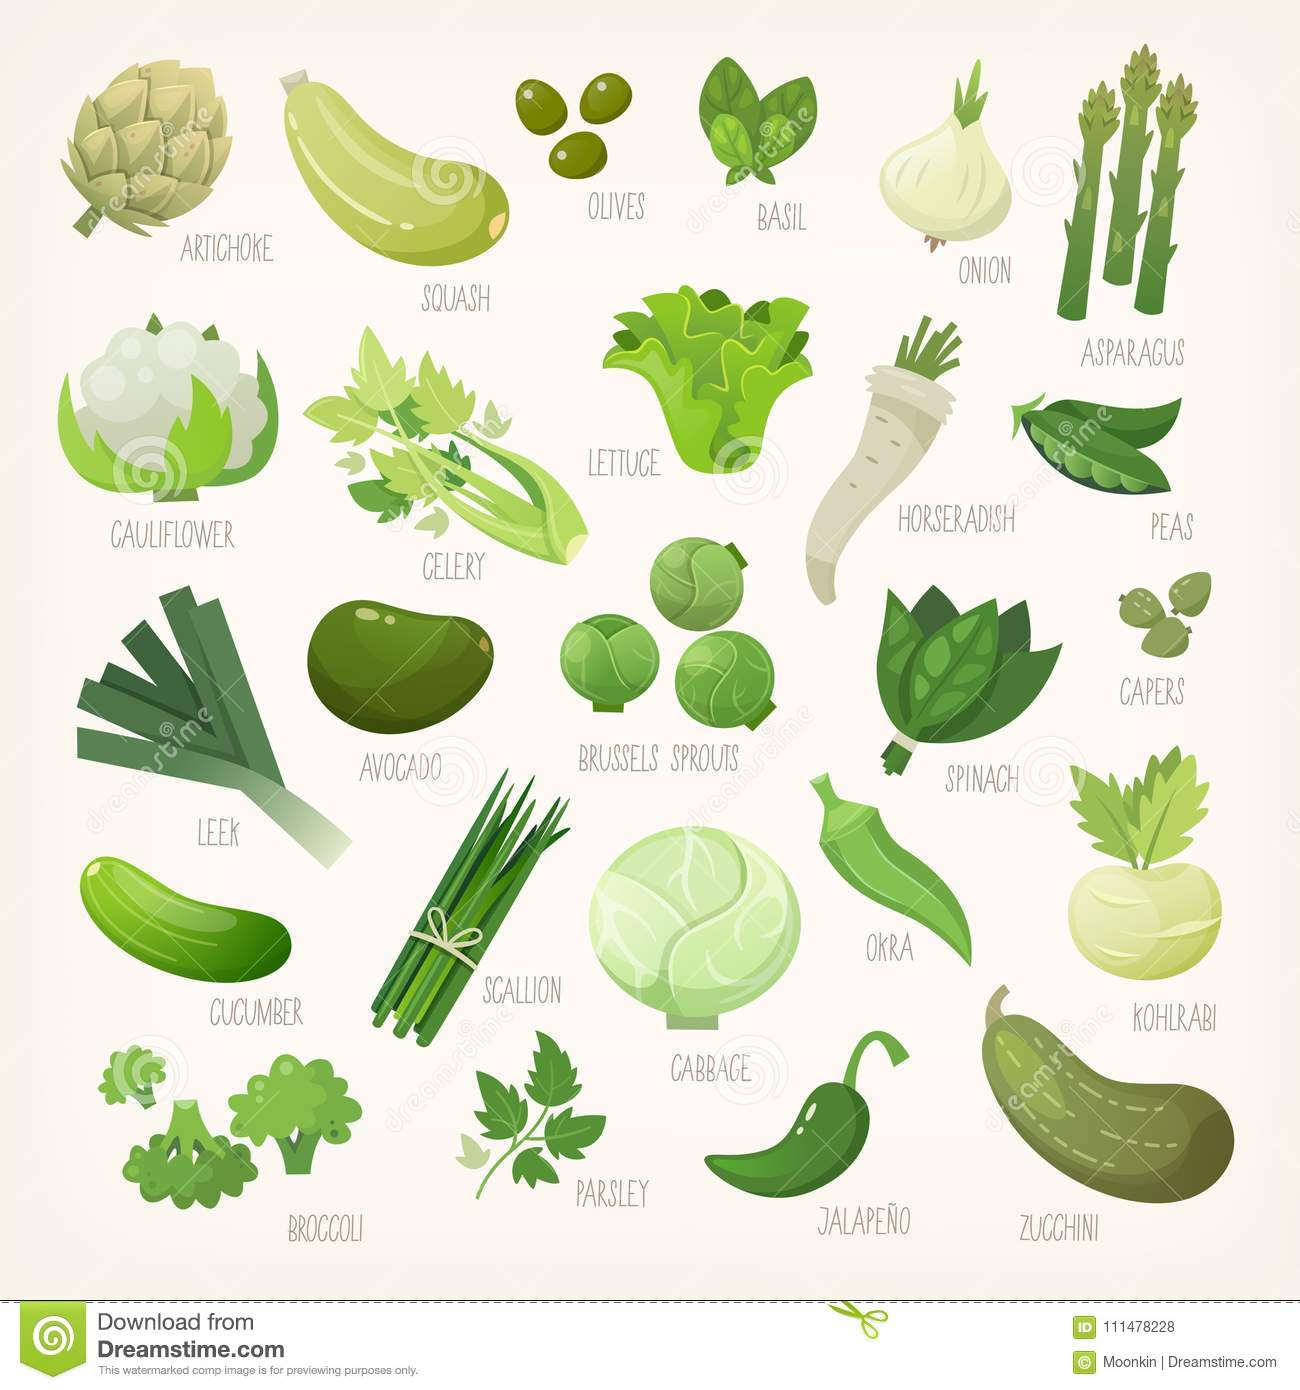 Green Fruit And Vegetables With Names Stock Vector - Illustration of